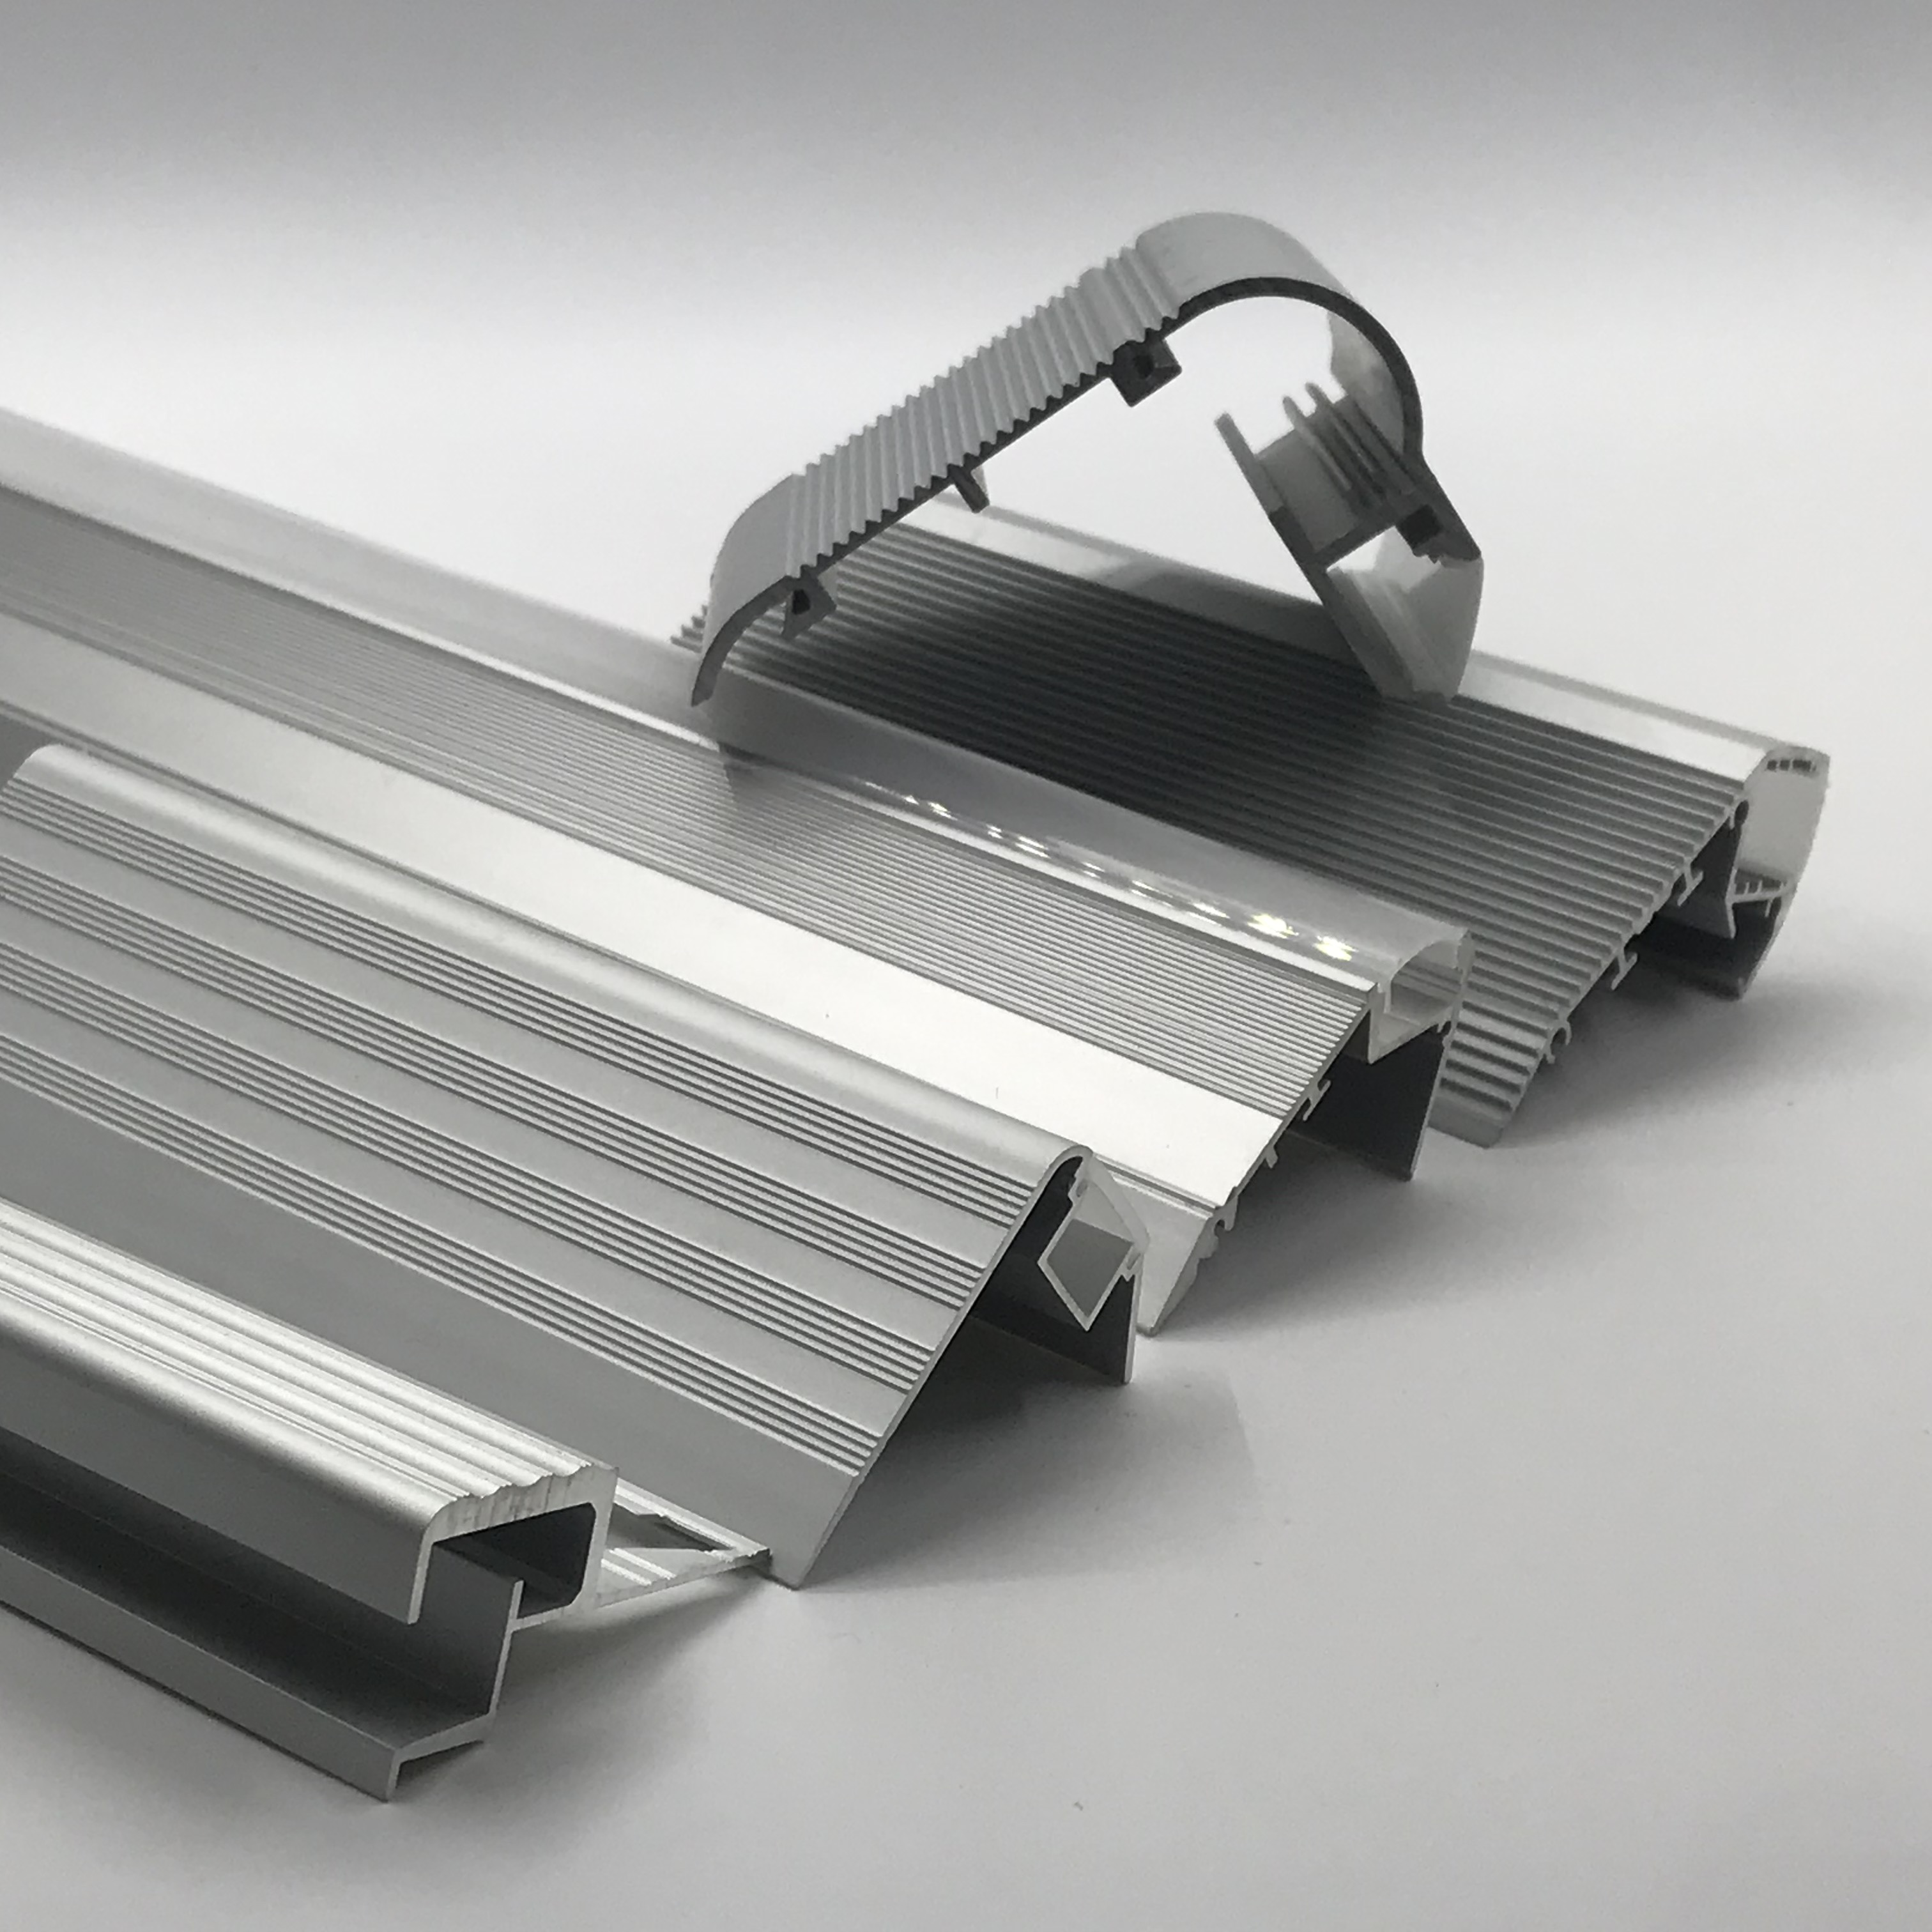 Hero metal high quality aluminium led profile for led strip light 20mm wide in stock